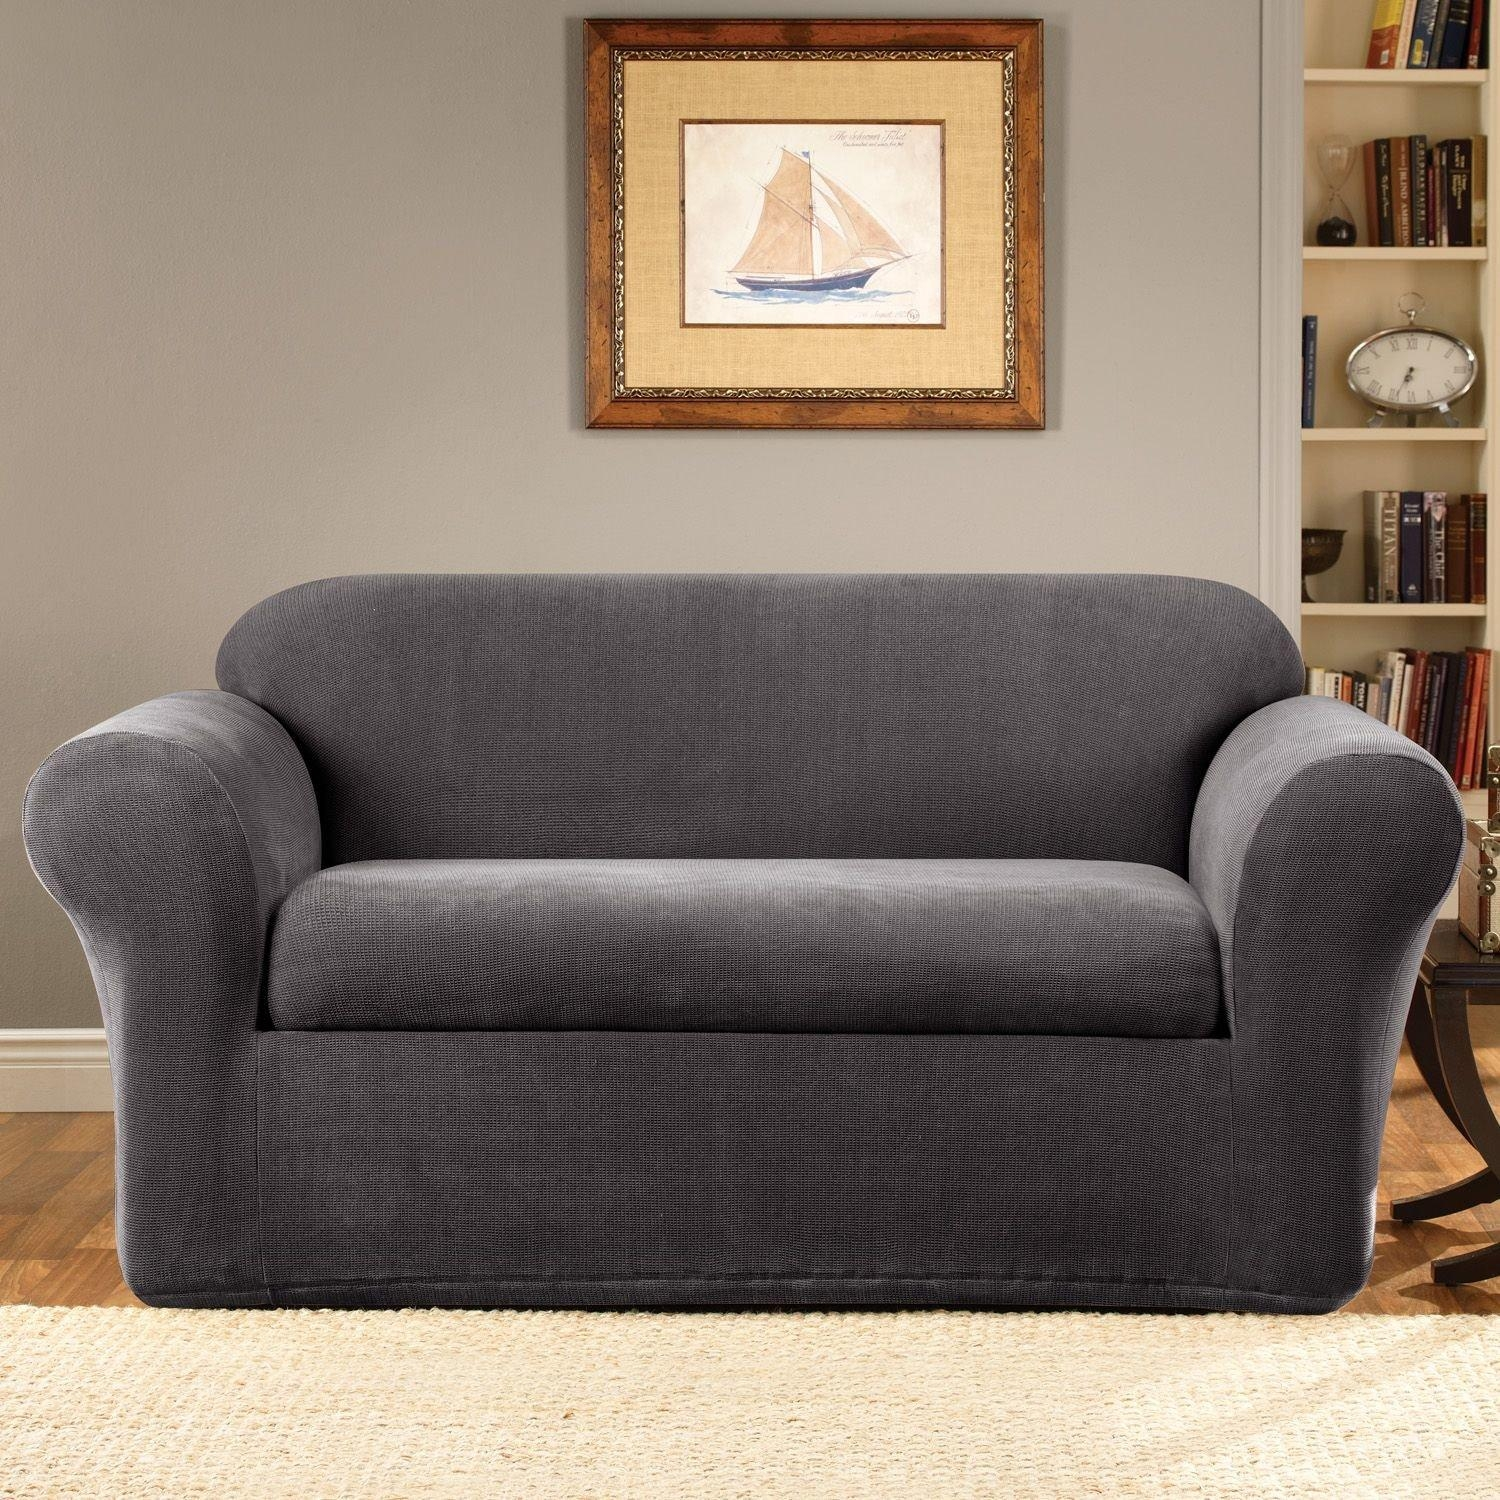 Furniture: Couch Slip Cover Will Stand Up To The Rigors Of For Slip Covers For Love Seats (Image 5 of 20)